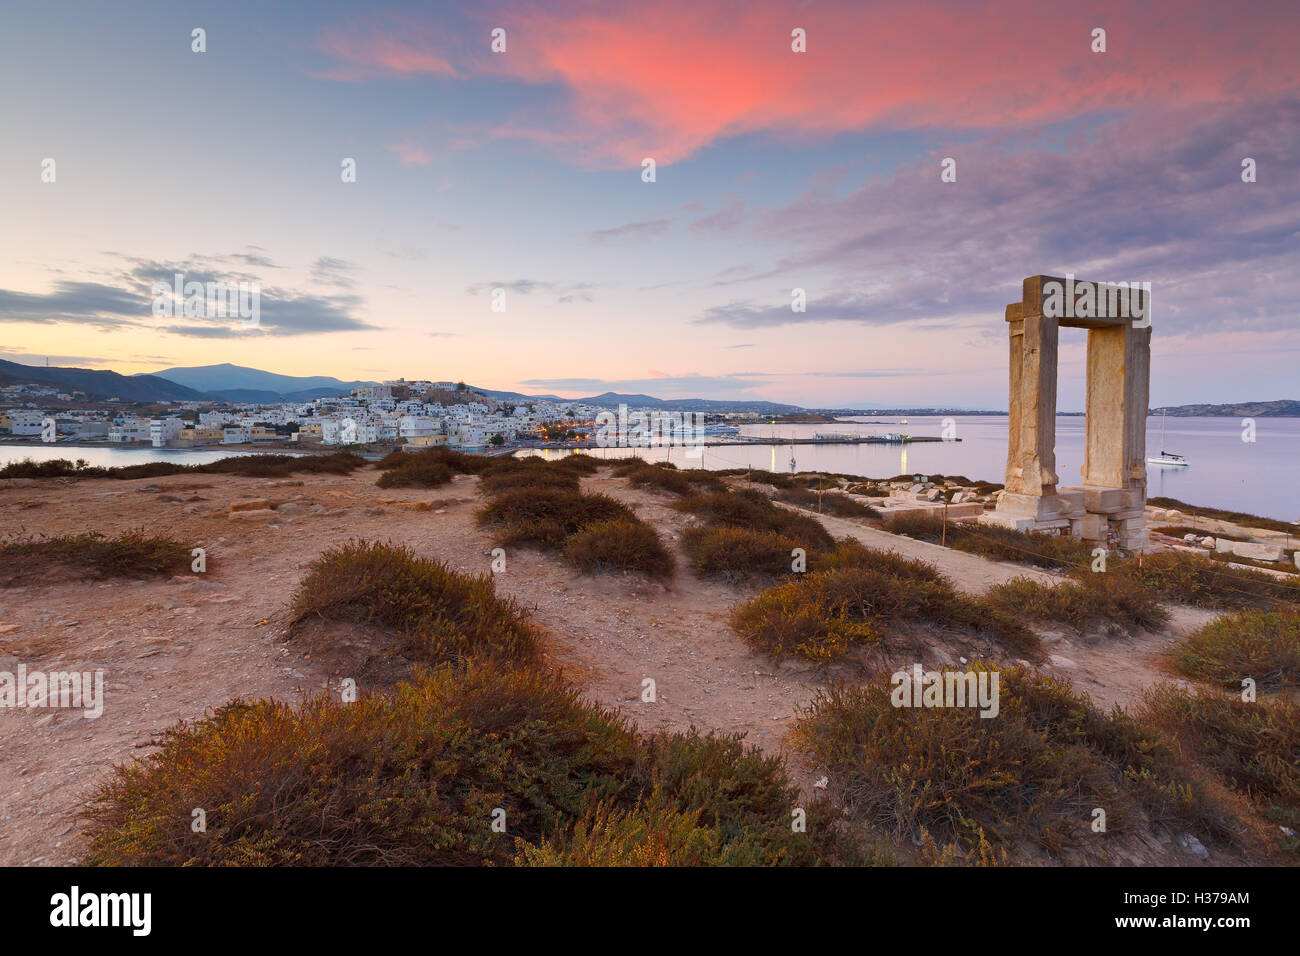 View of Portara and remains of temple of Apollo at sunrise. - Stock Image